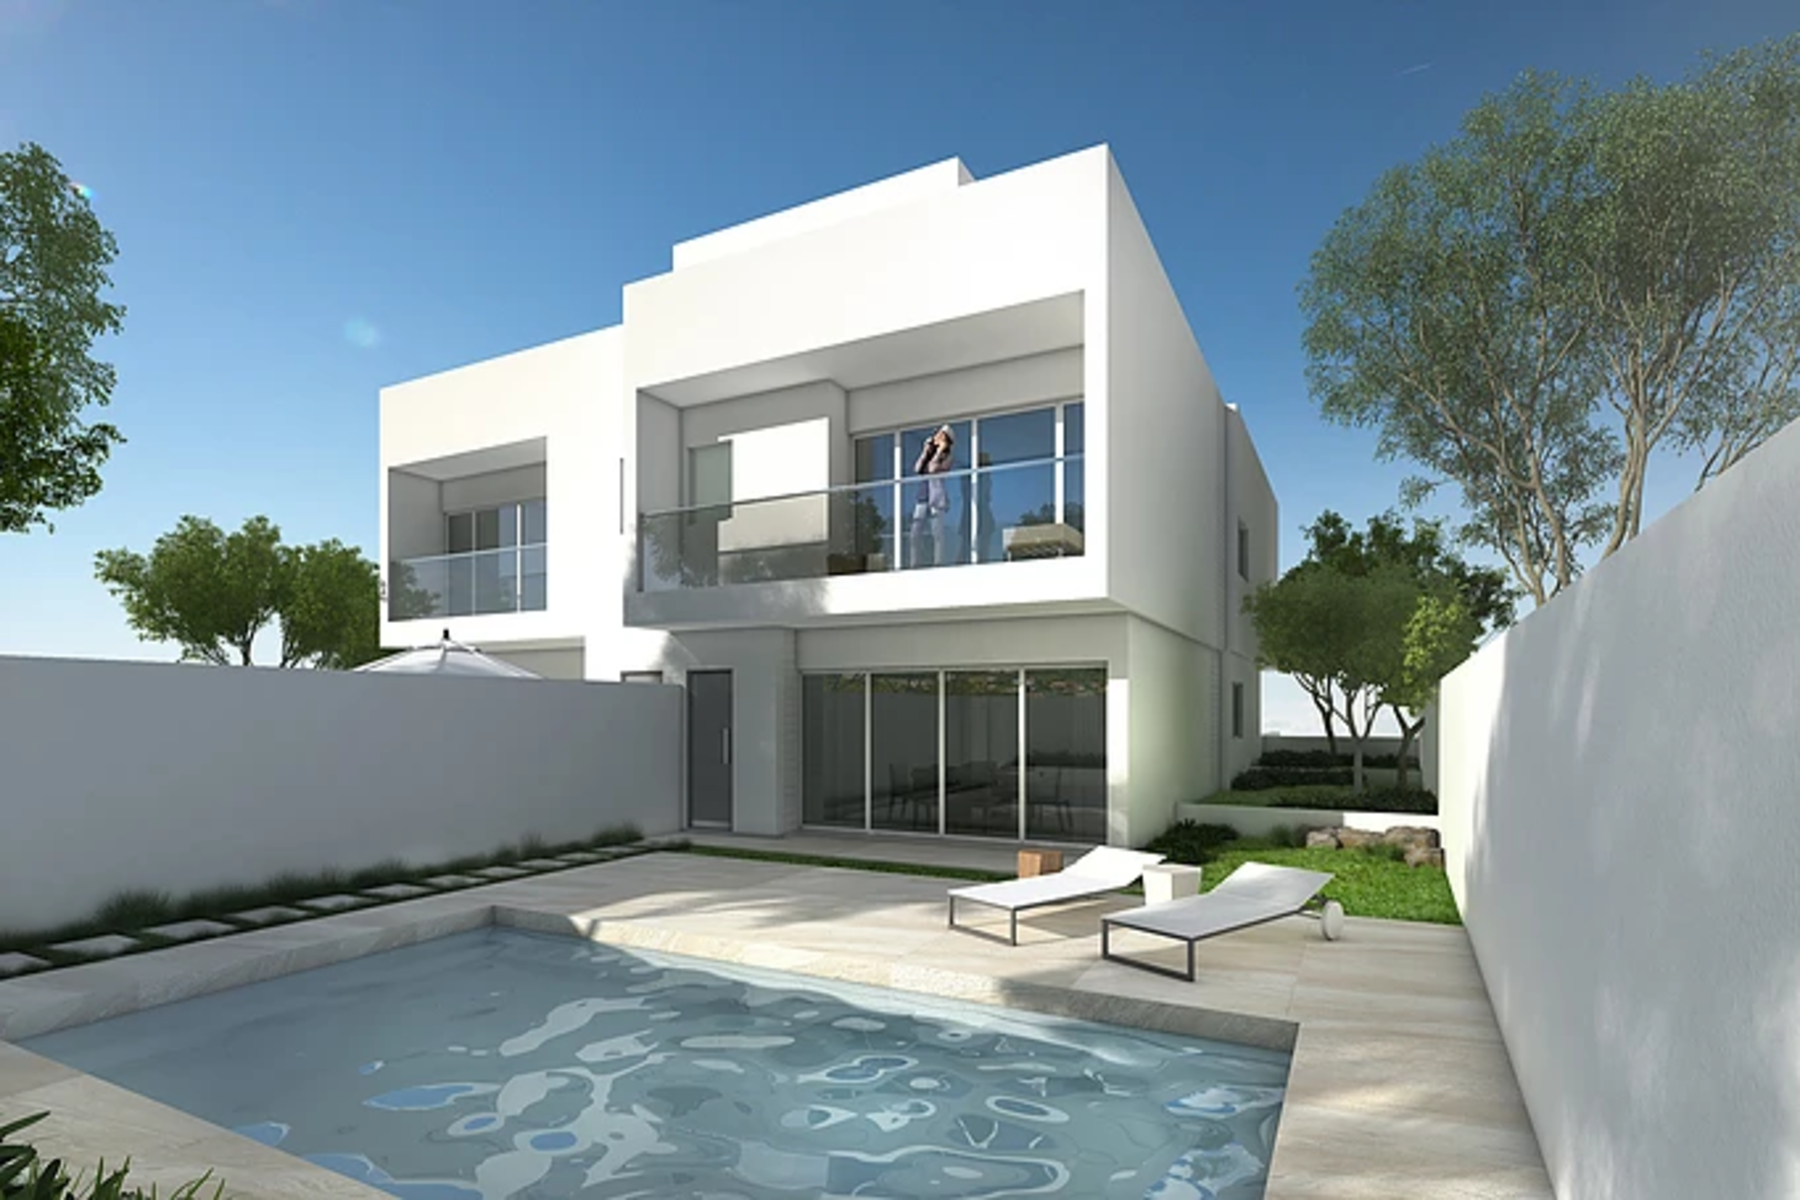 Single Family Home for Sale at Semi-Detached Villa Attard, Malta